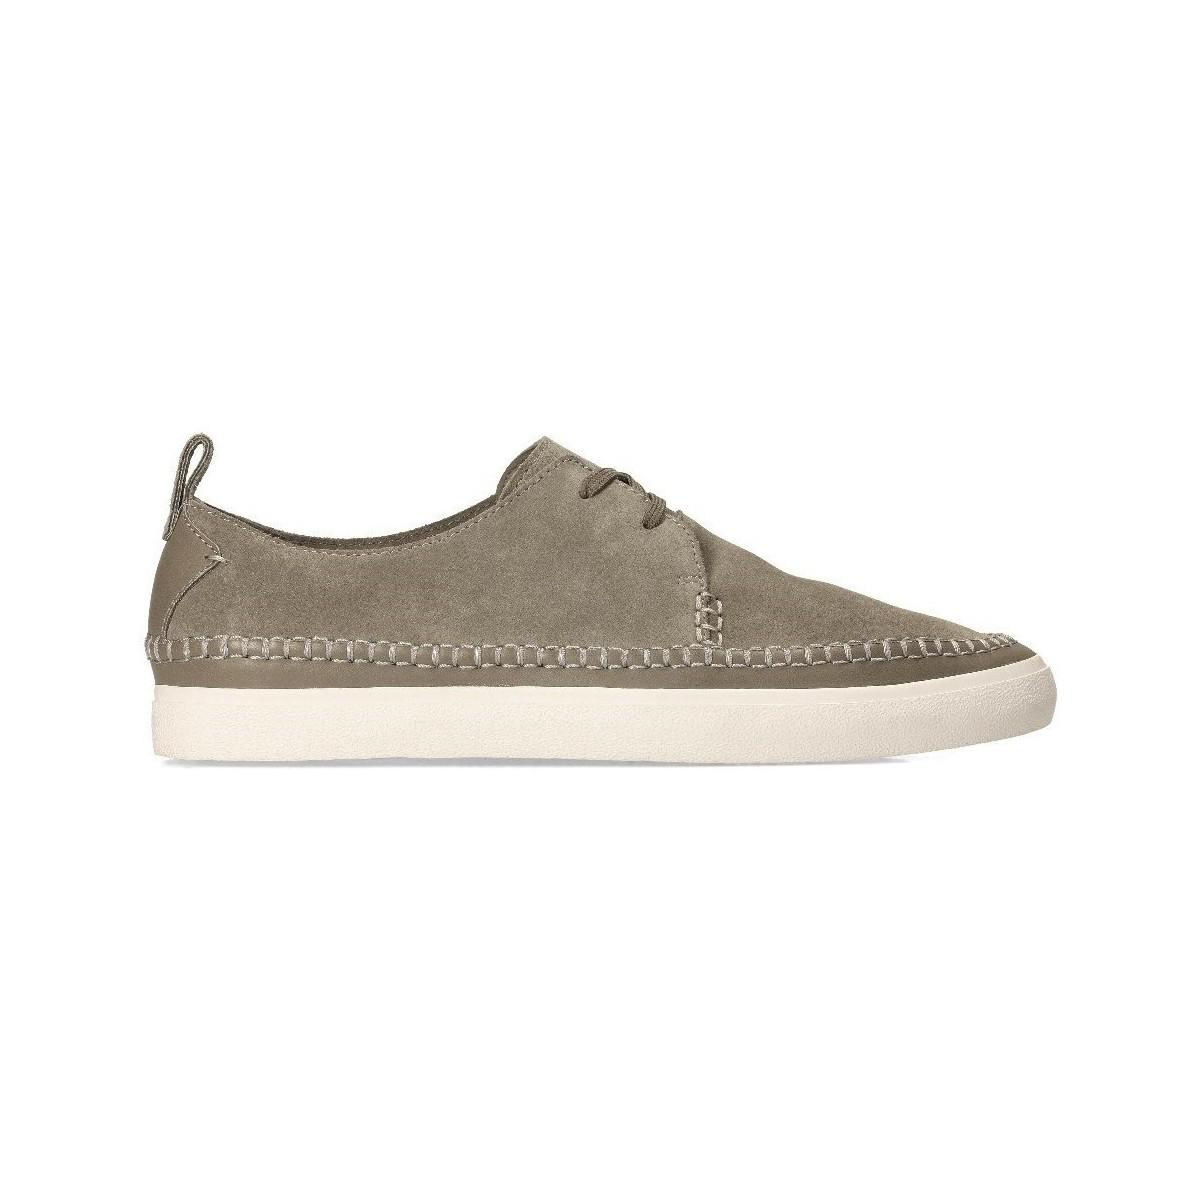 Clarks KESSELL - Trainers - blue g6ZGF72